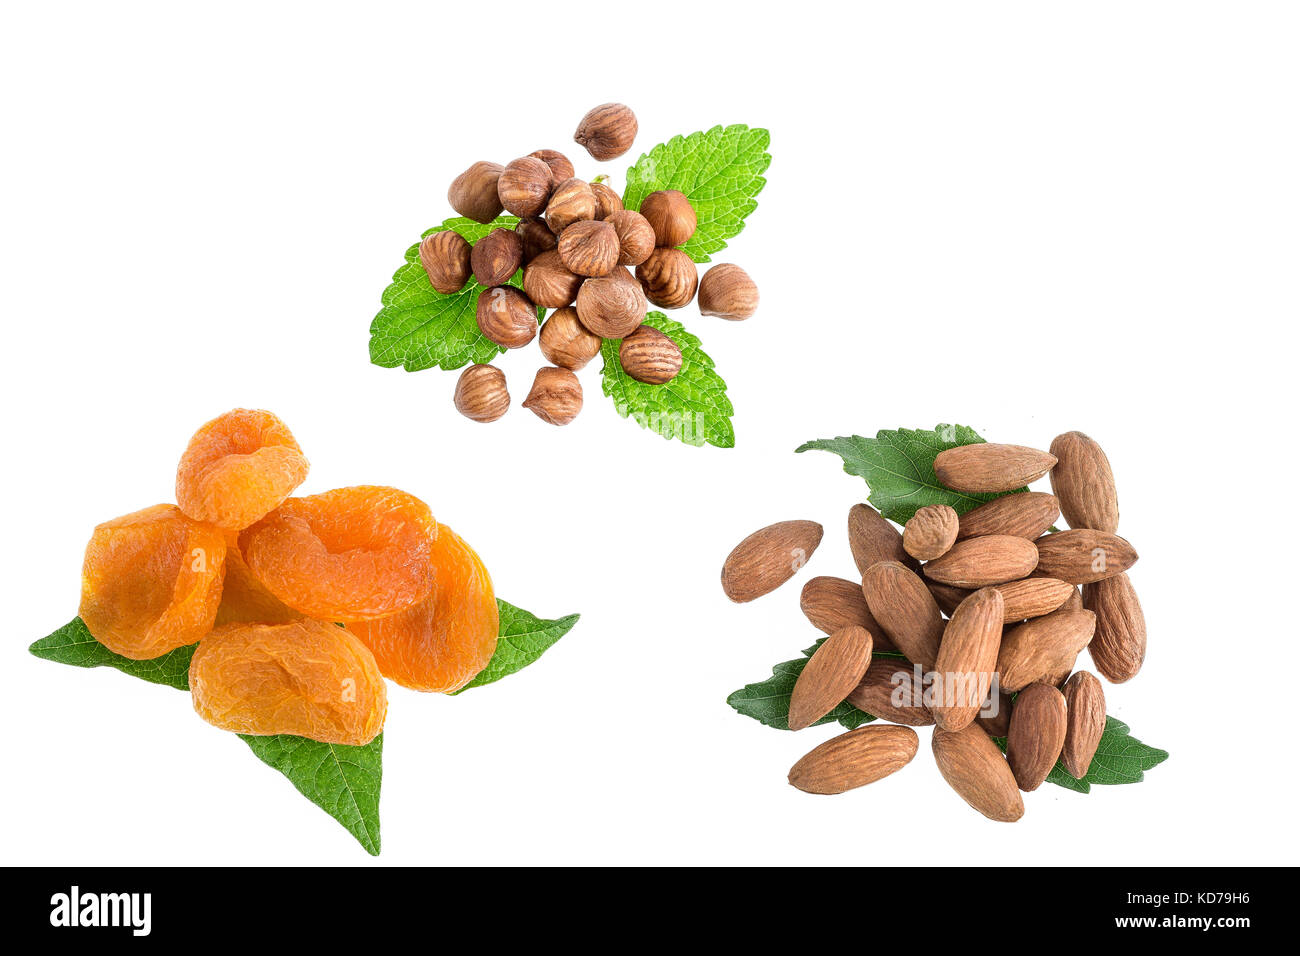 almonds, walnut, dry raisin, dried apricots in one collection on white - Stock Image